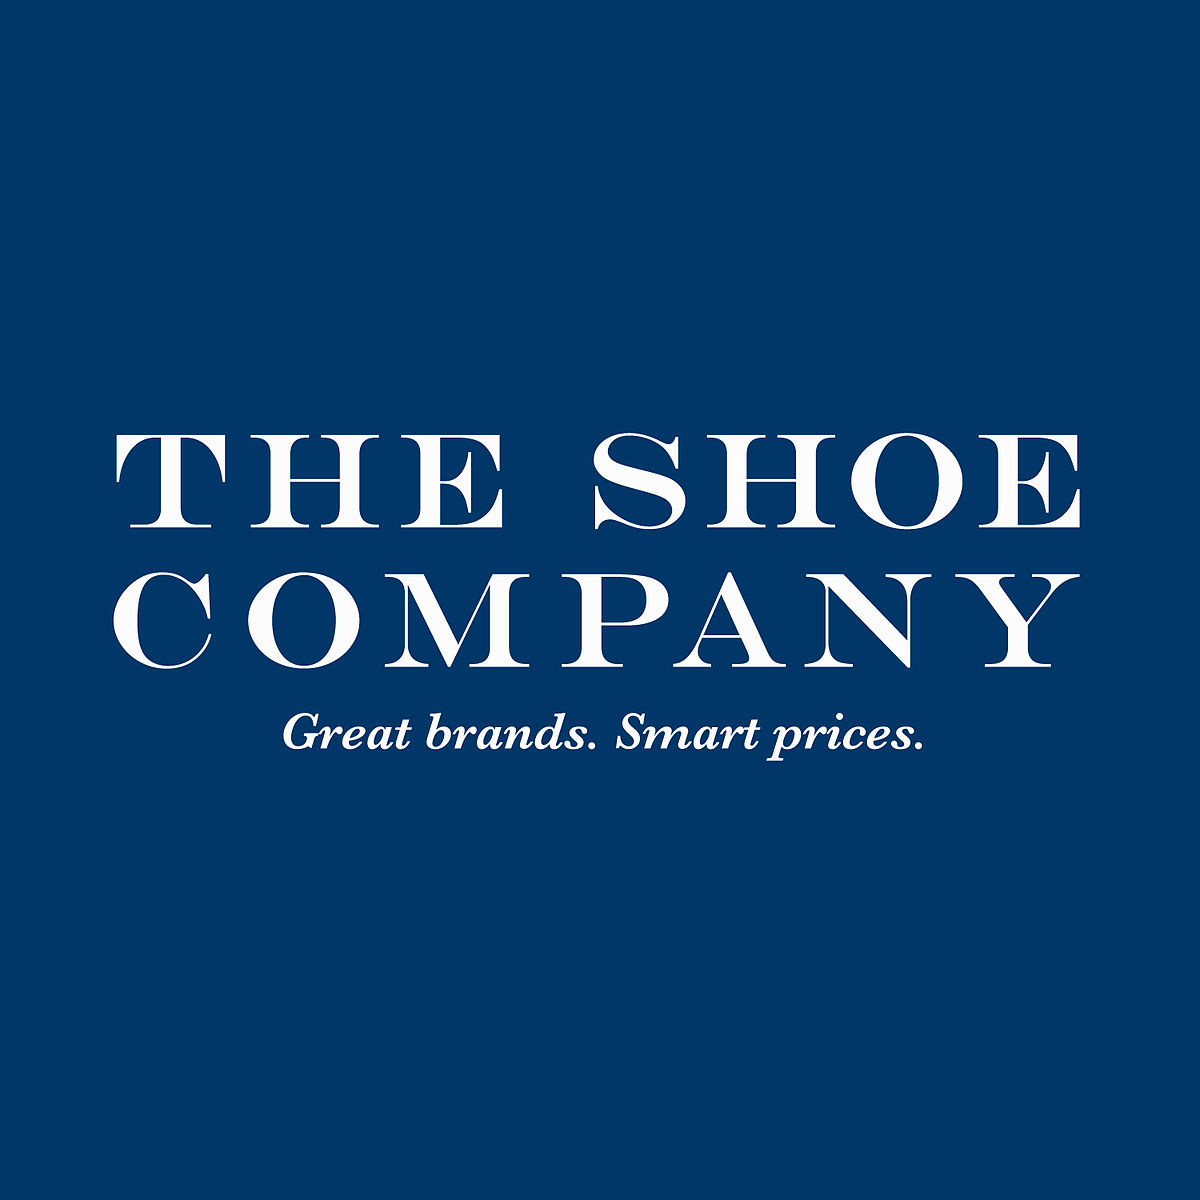 Is The Shoe Company Owned By Town Shoes